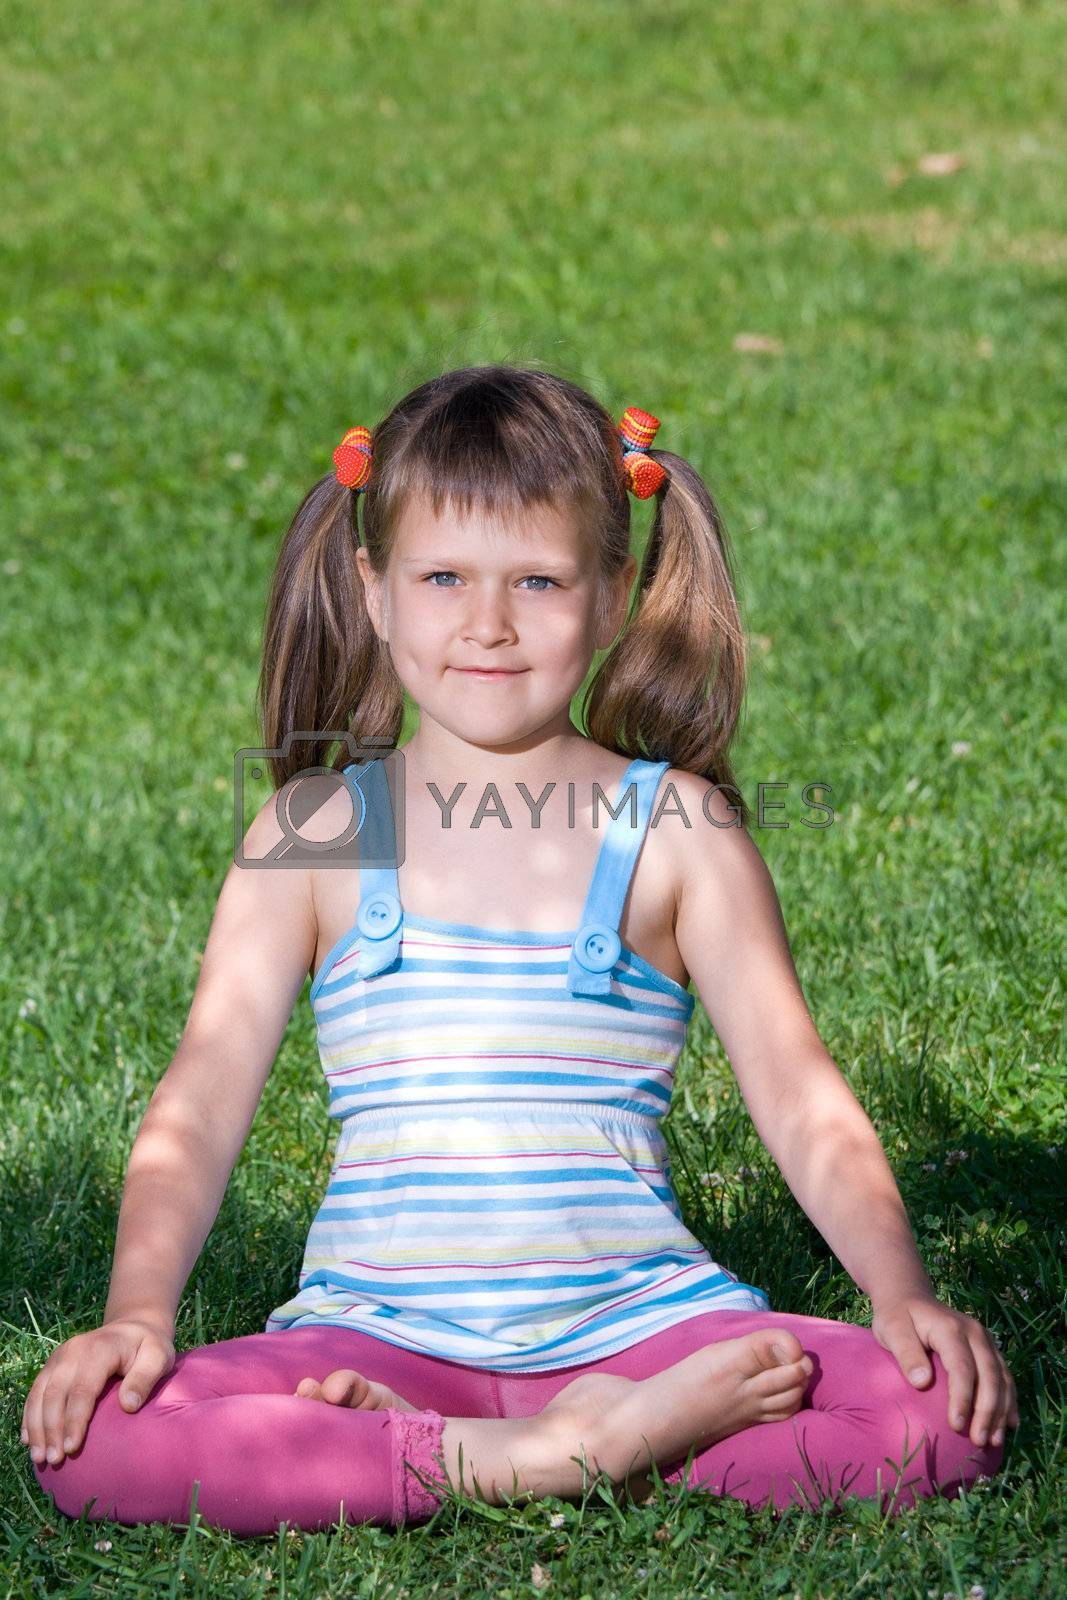 Smiling child sit and meditate in asana on green grass by SergeyAK